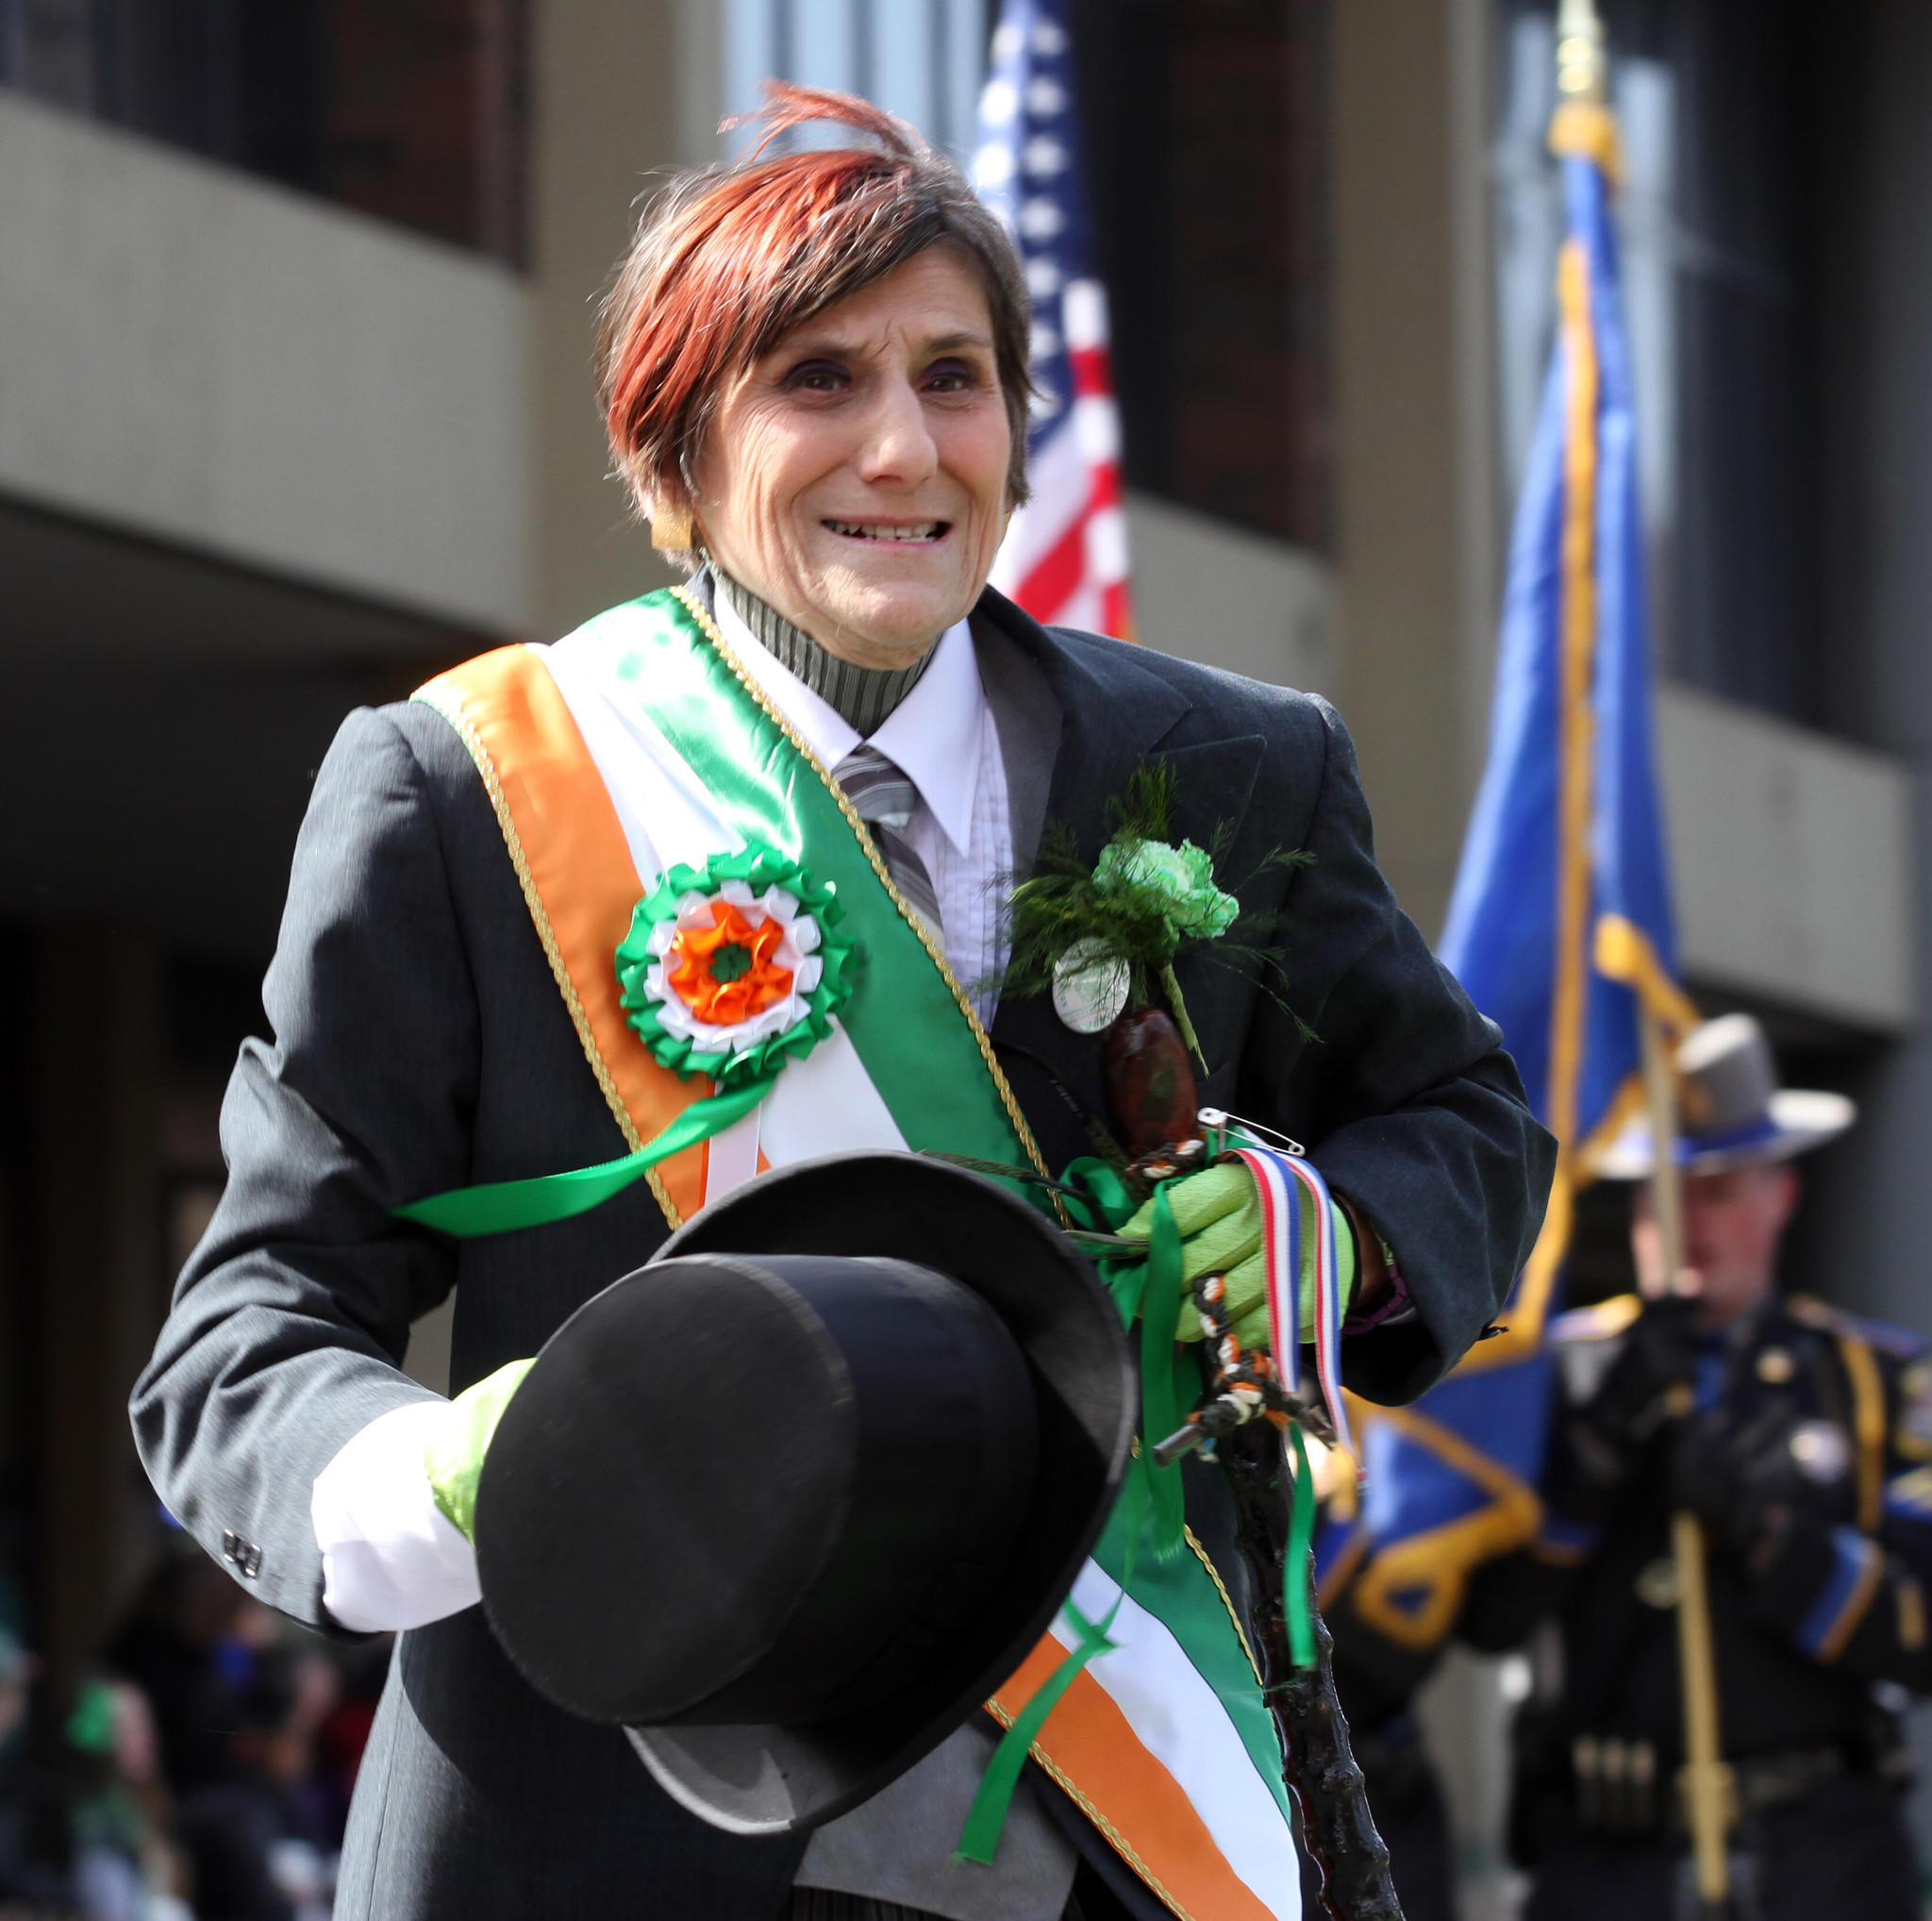 Twelve-term U.S. Rep. Rosa DeLauro, D-3rd District, is seen earlier this year at the New Haven St. Patrick's Day Parade.